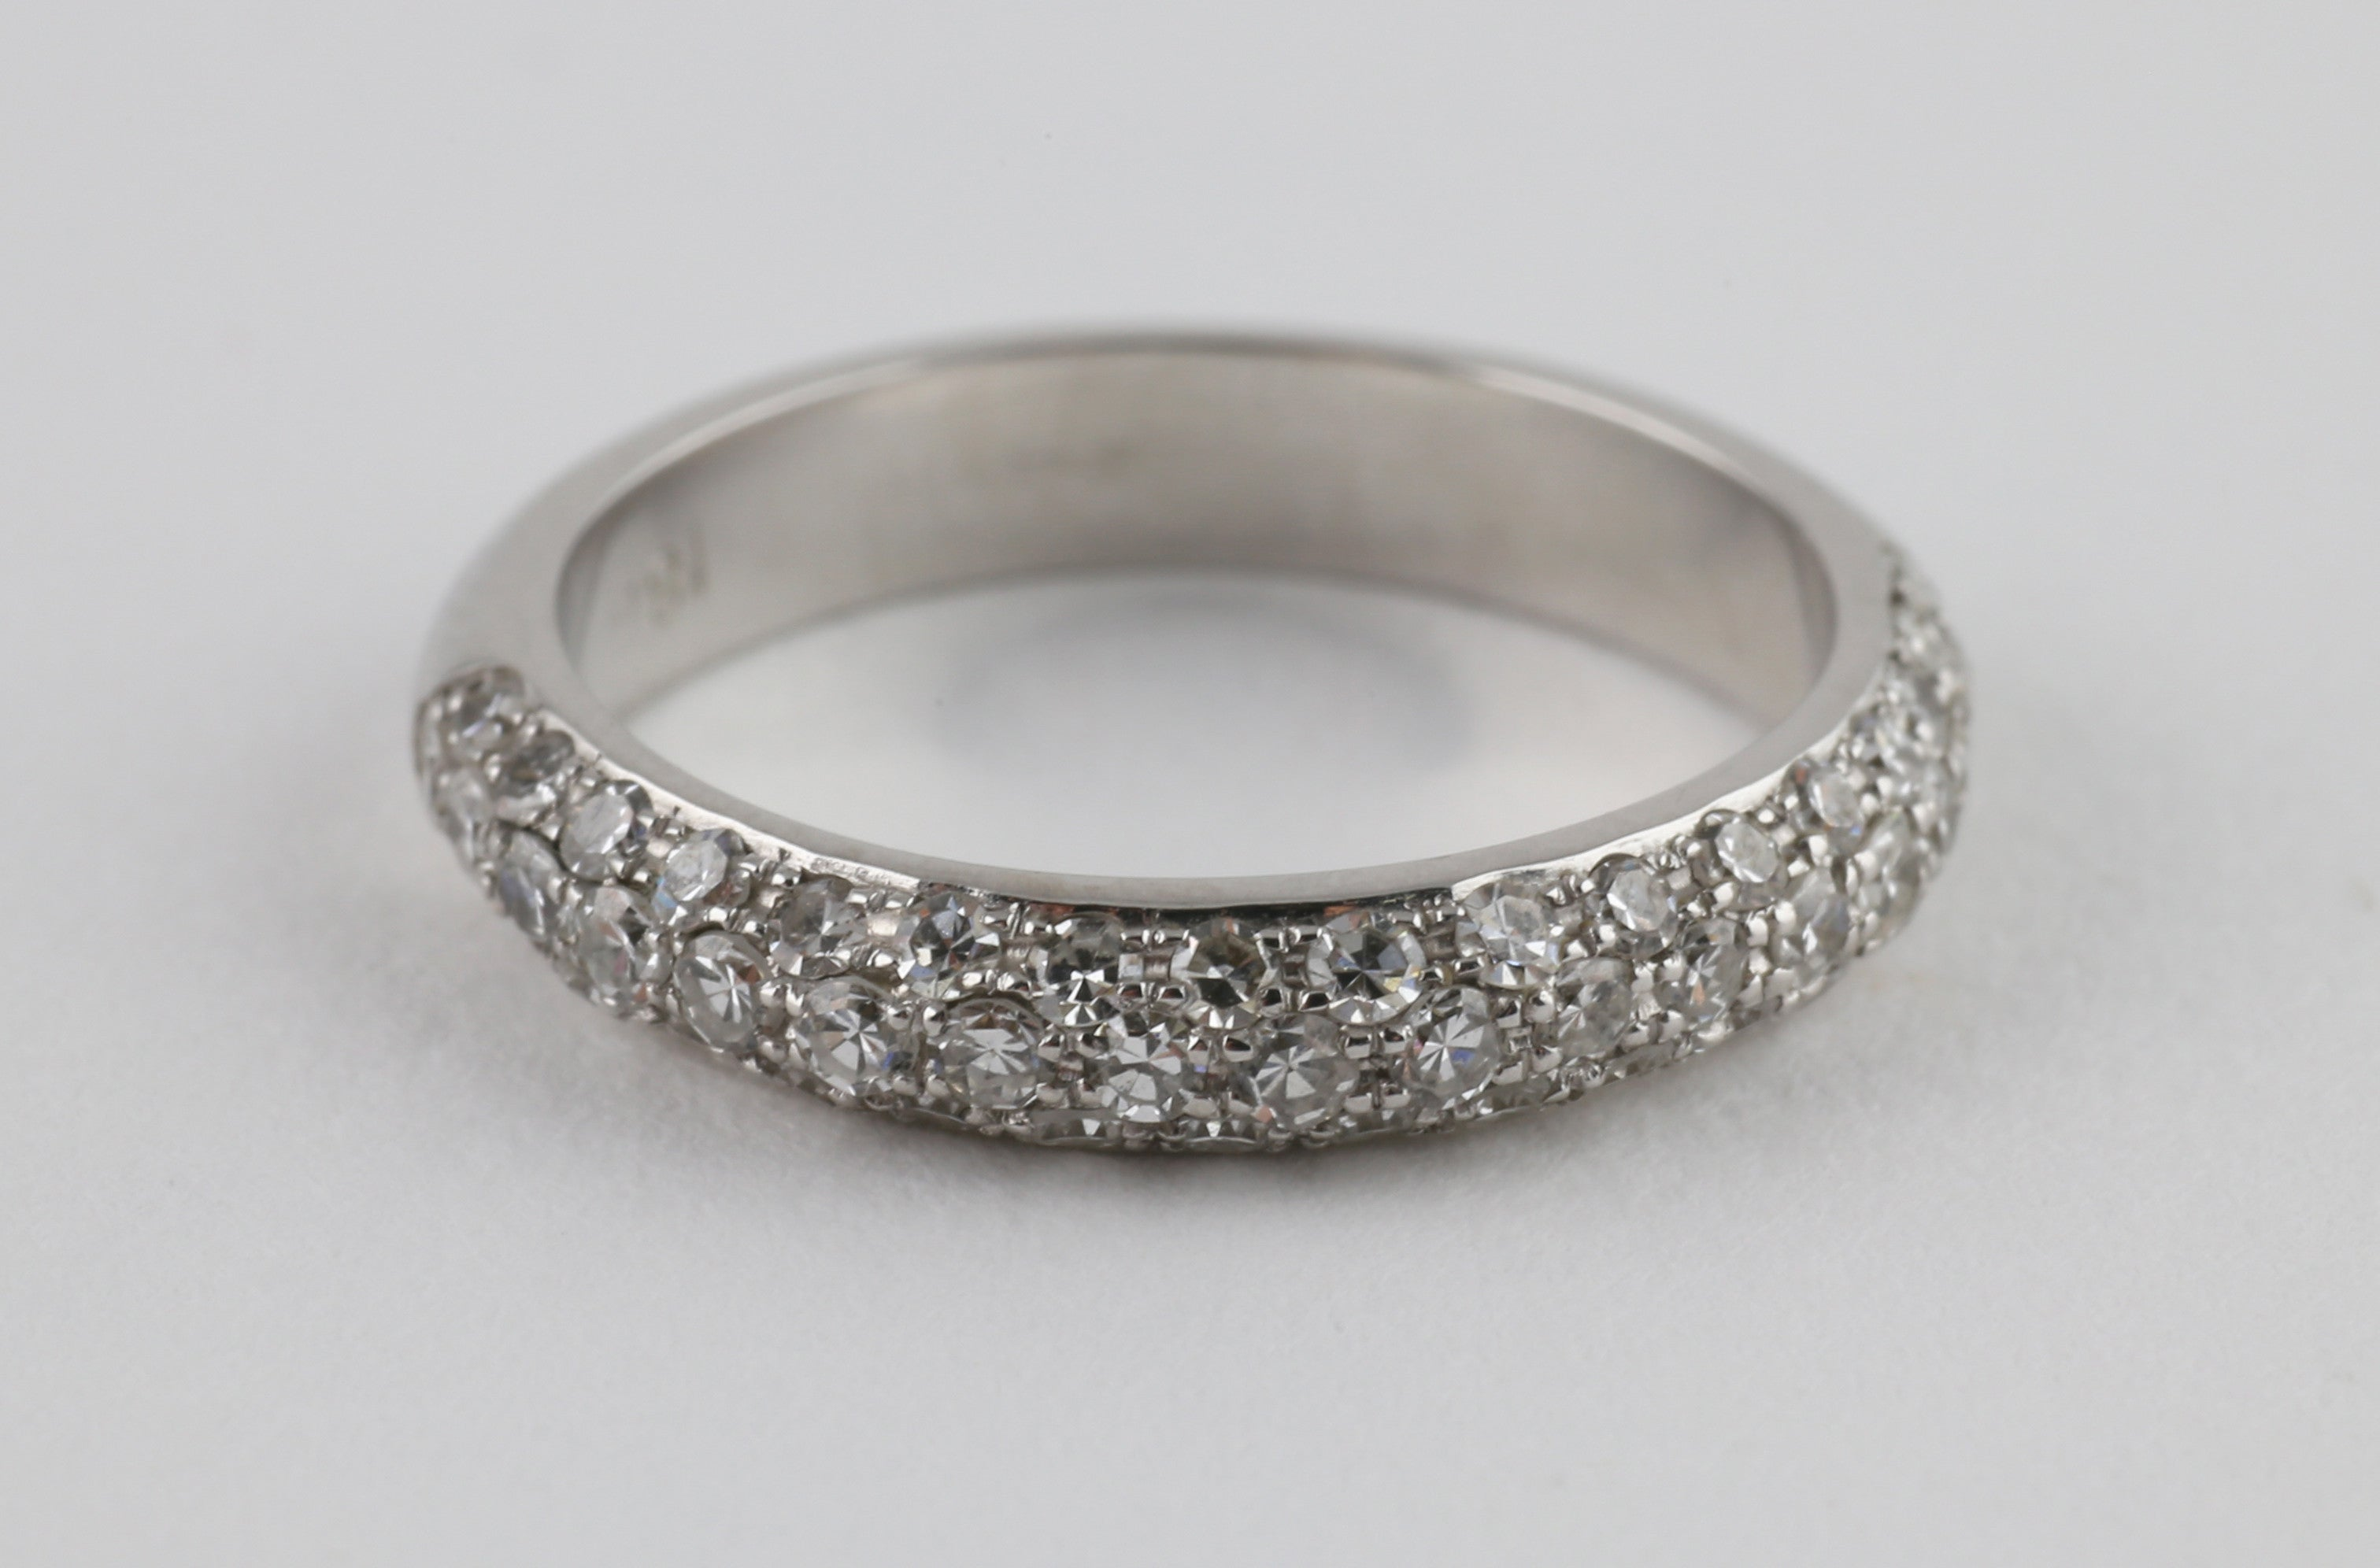 engagement platinum diamond set rings pave bespoke tier collections pav products duttsonrocks ring